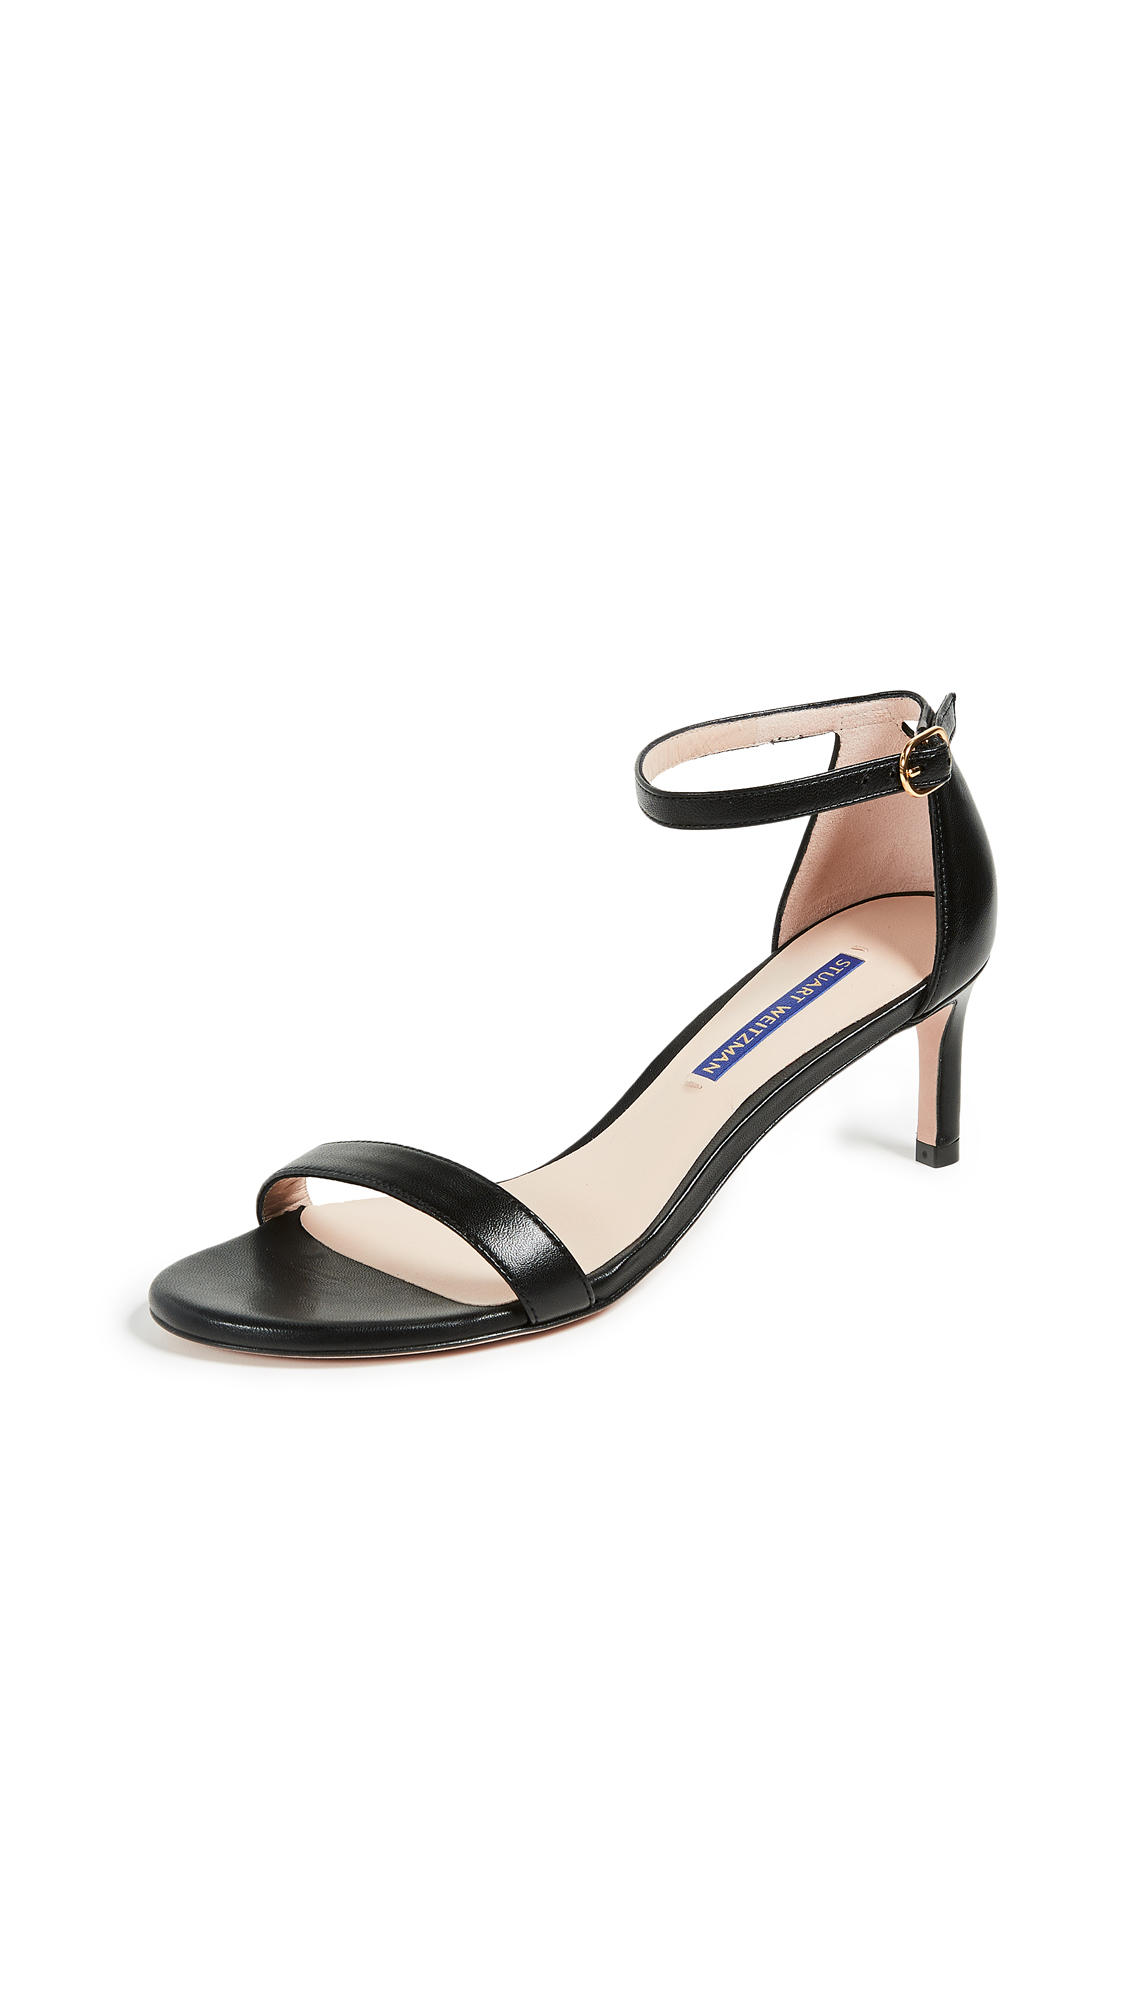 Stuart Weitzman The Nunakedstraight 60mm Sandals - Black